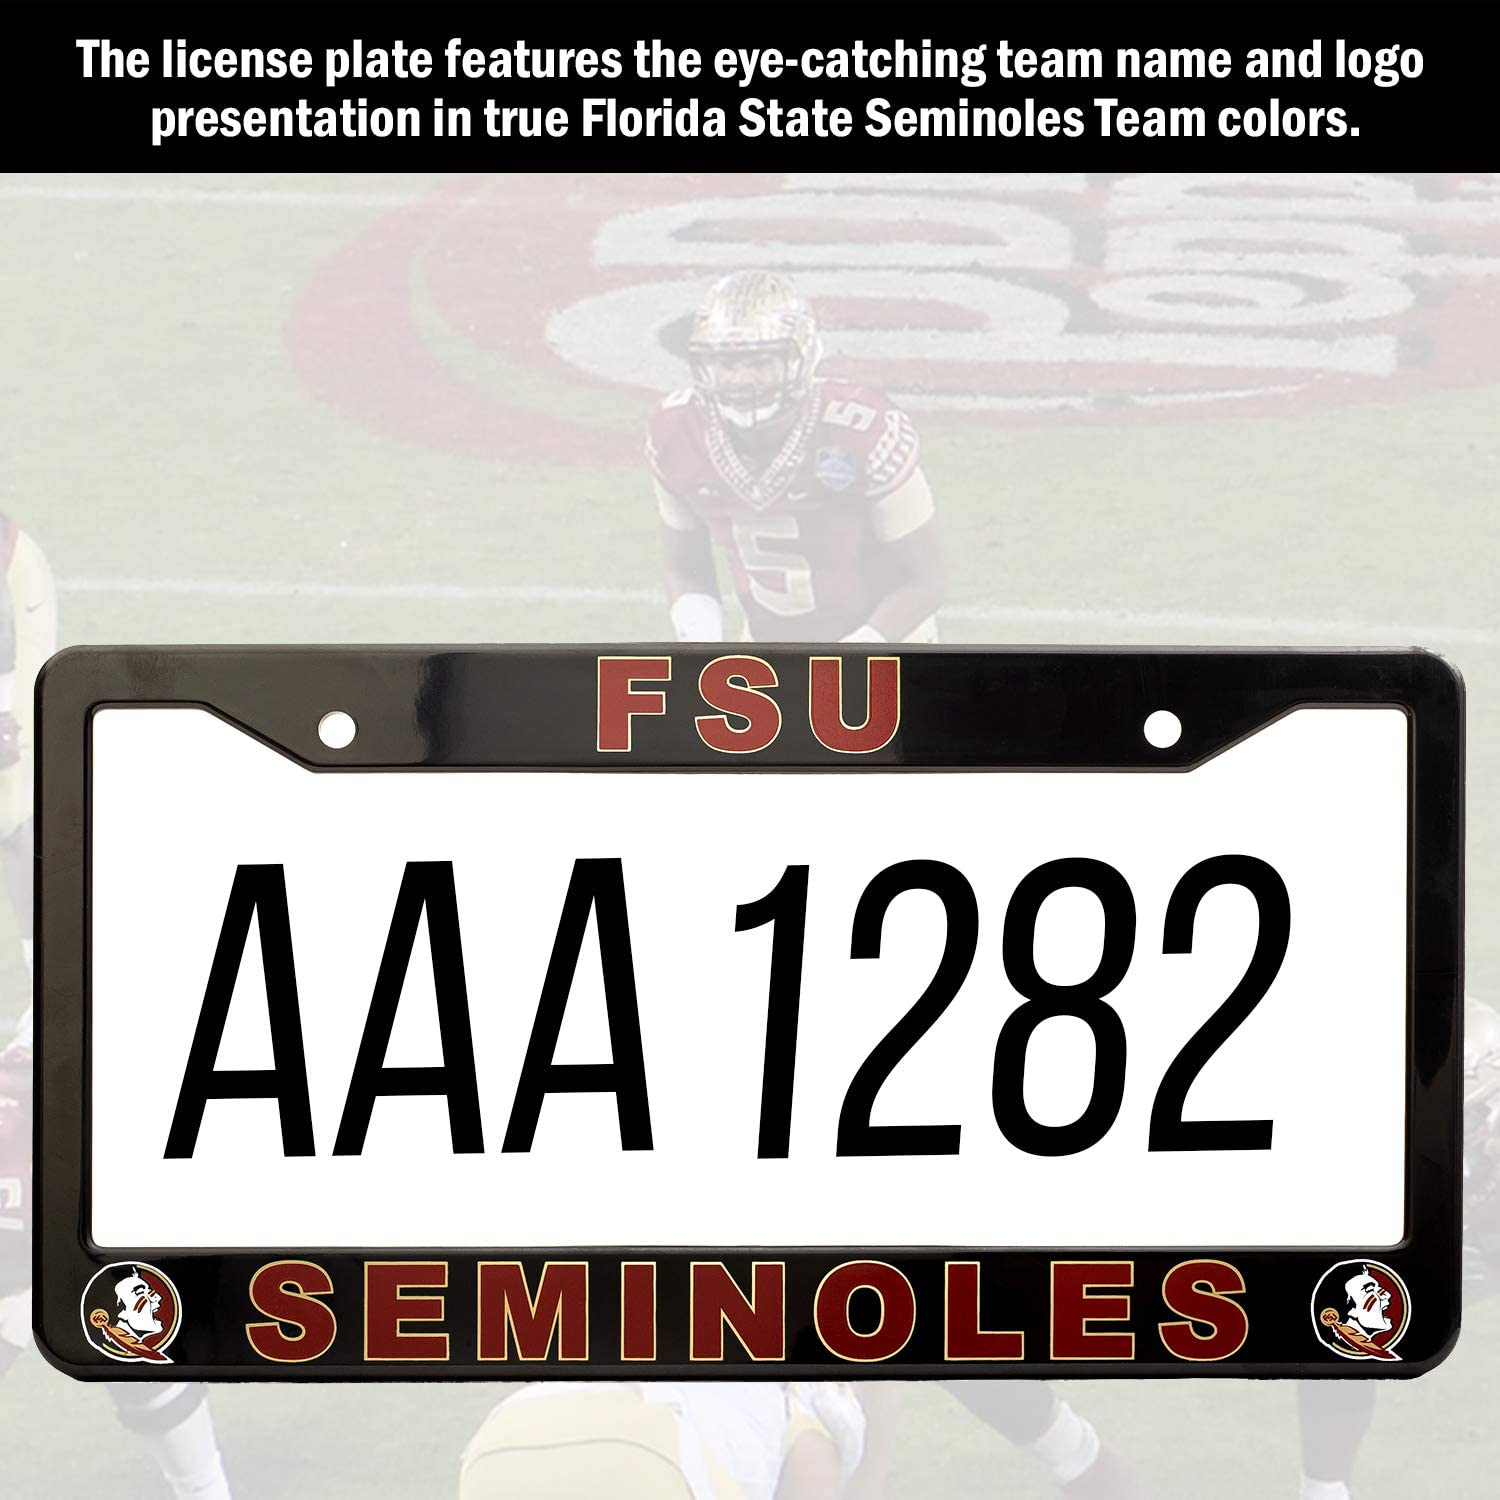 """NCAA Car Accessory Black Ideal Gift for Sports Fans /& Supporters EliteAuto3K Florida State Seminoles License Plate Frame Cover Slim Design 12.25/"""" x 6.25/"""""""